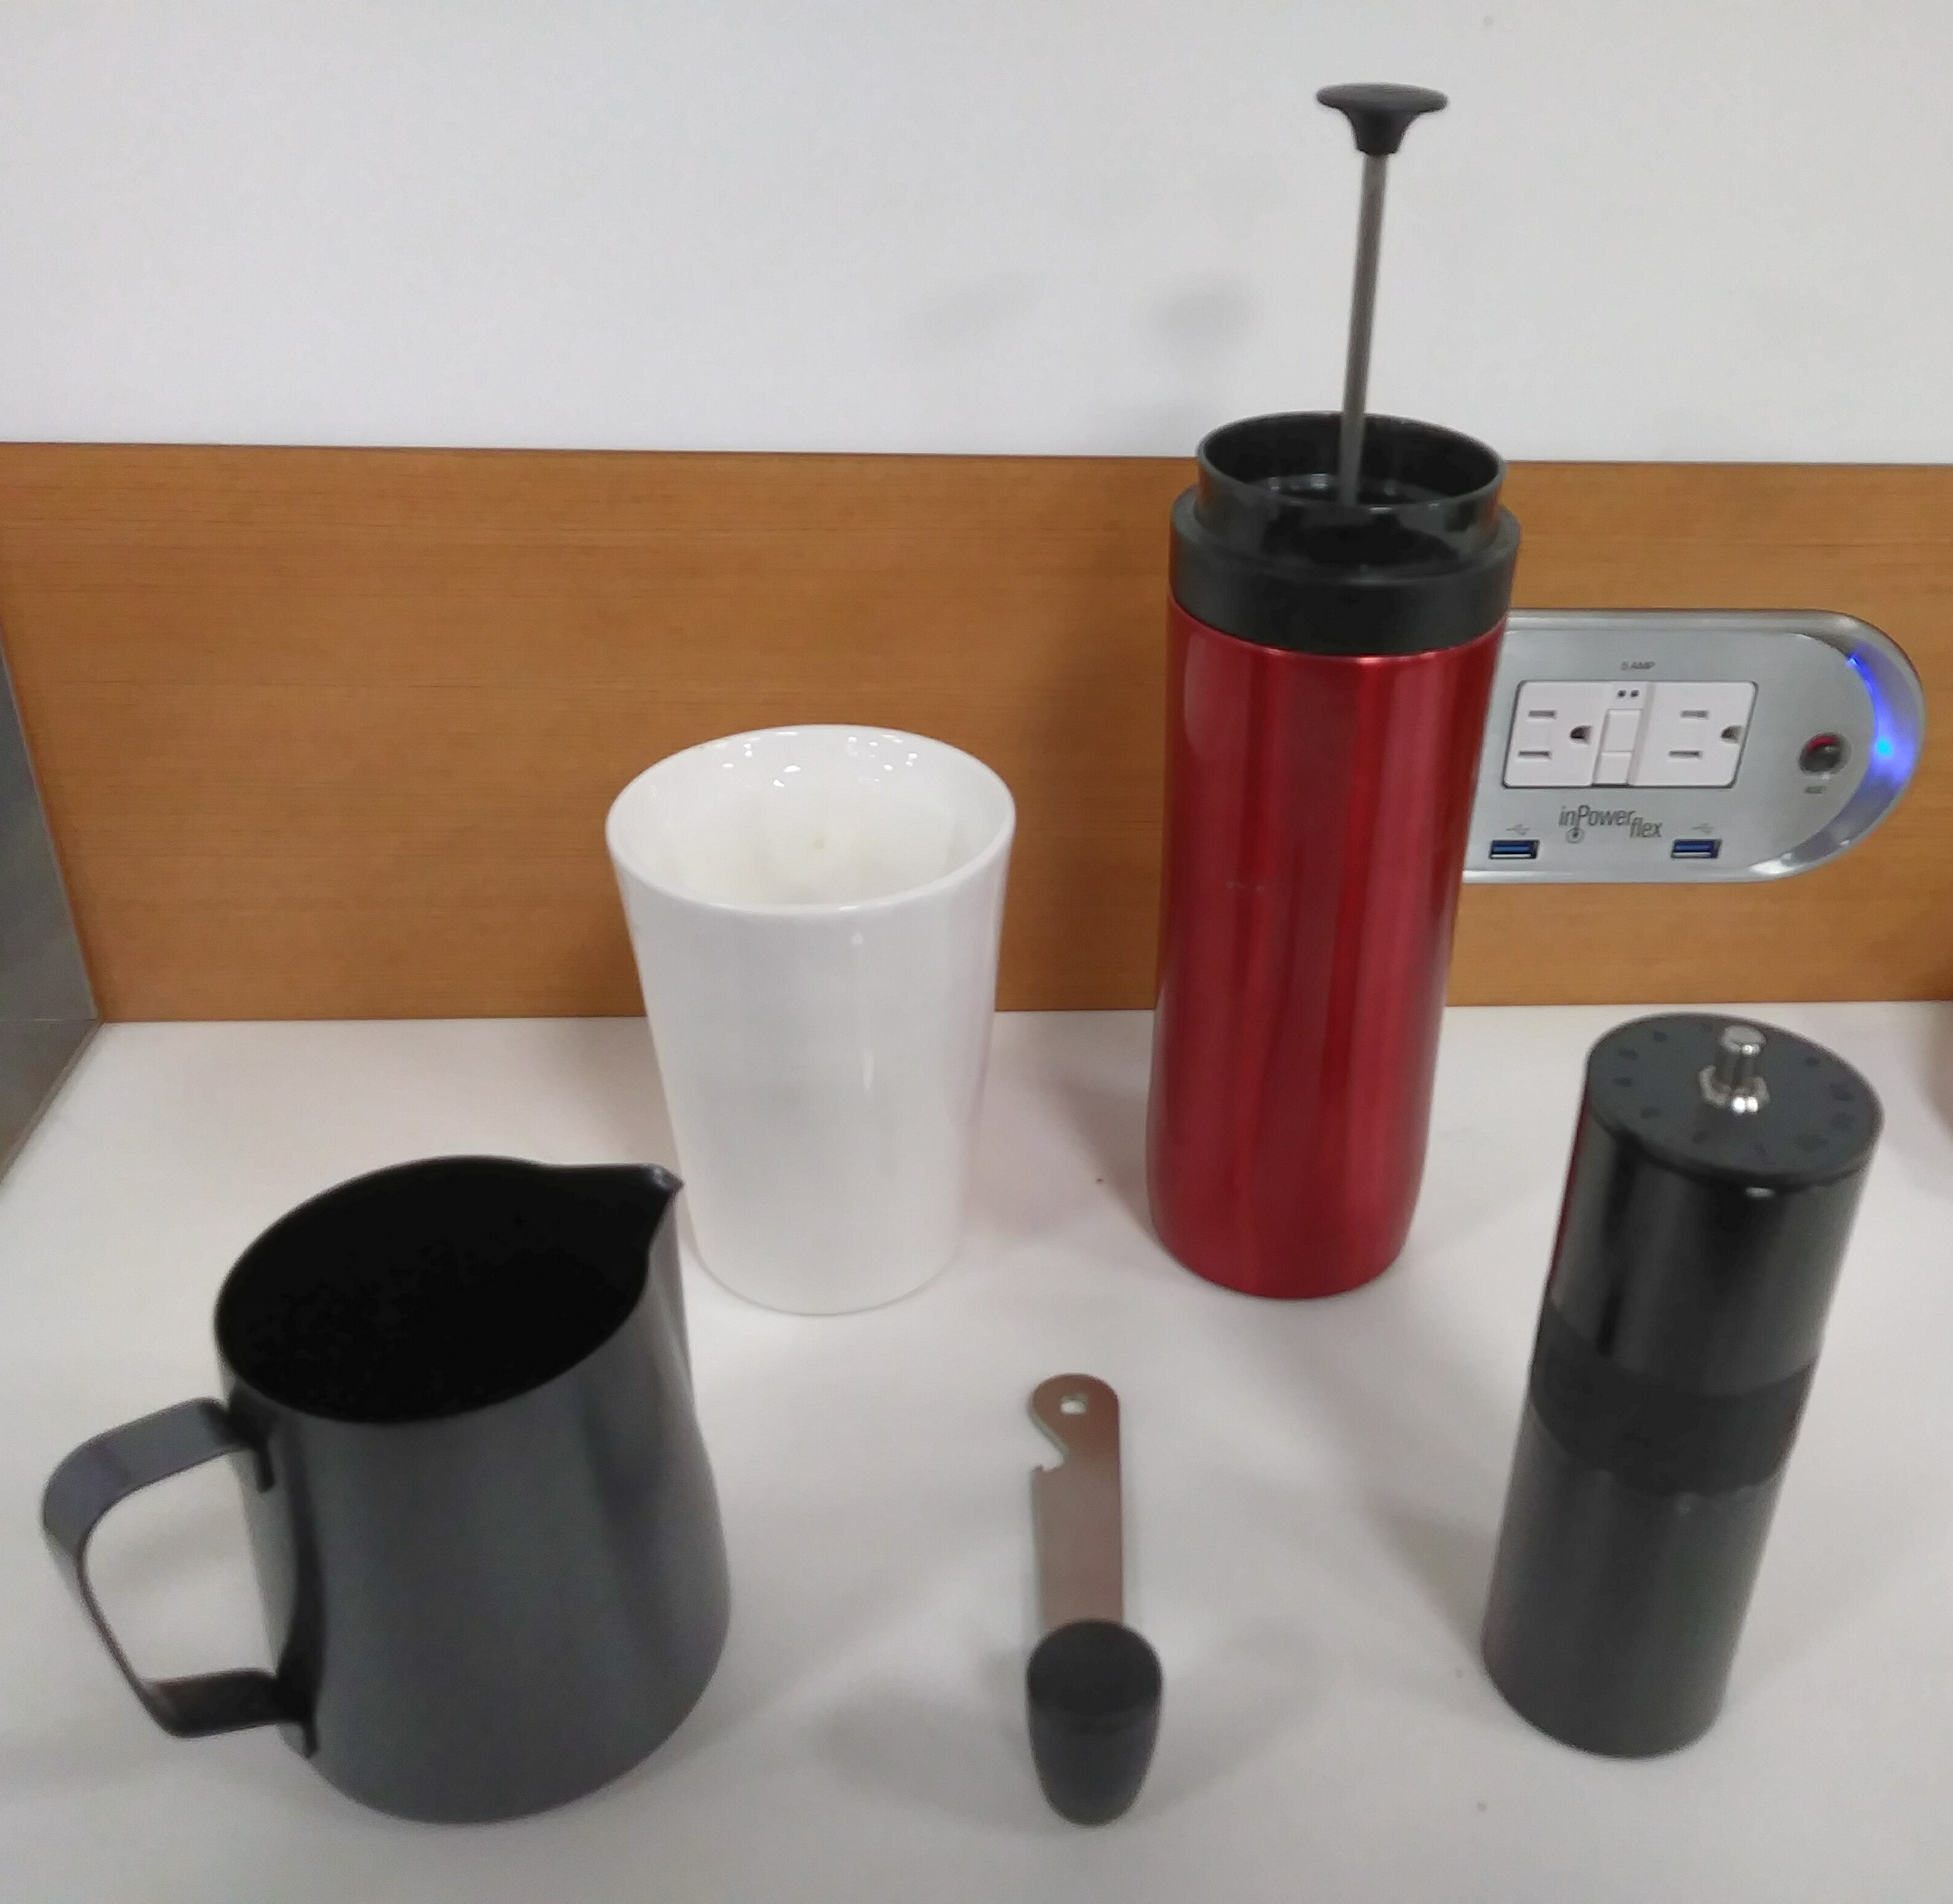 My Therma Cup, Travel Press and Aergrind at Miami Airport to provide me with much needed coffee before for a pre-dawn flight to Phoenix.